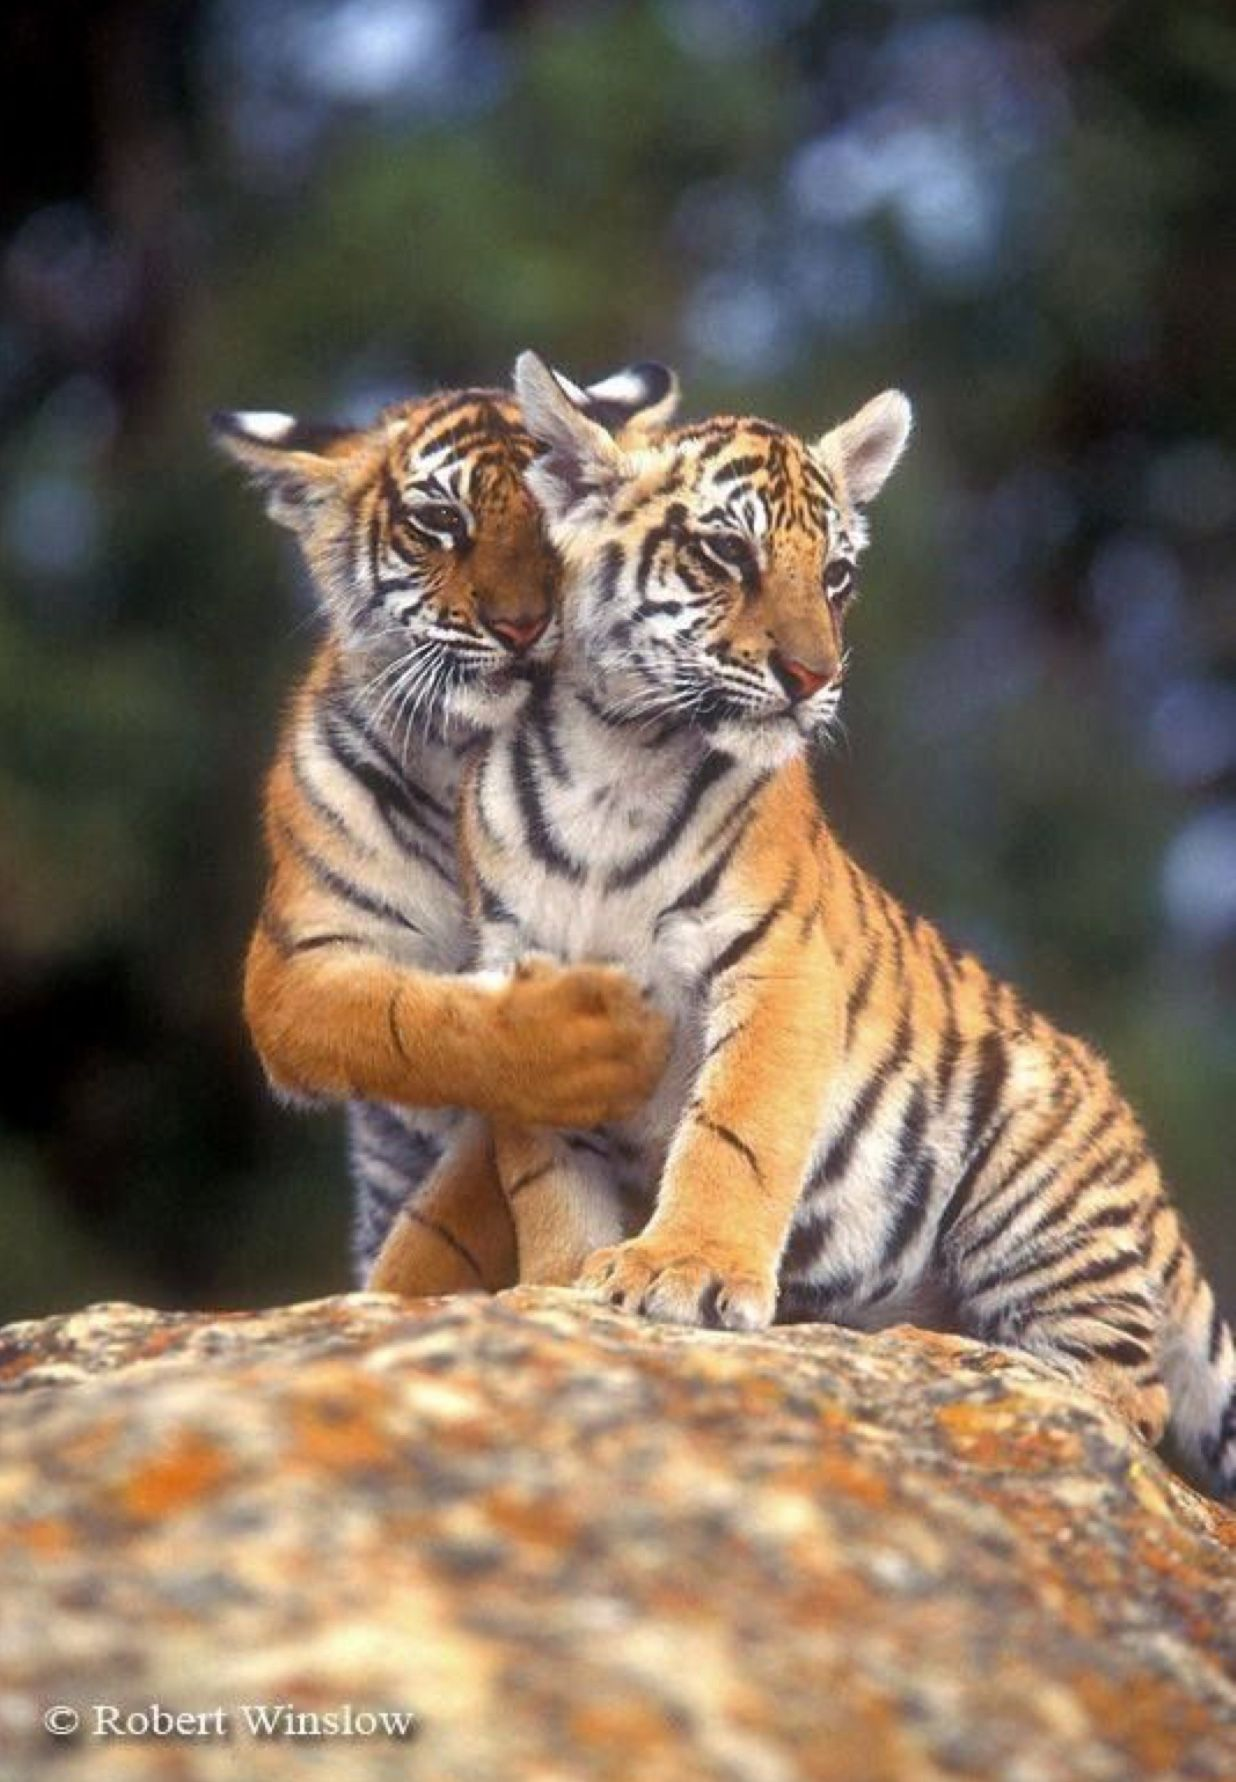 Beautiful Tiger Cubs One S A Philosopher The Other Wants To